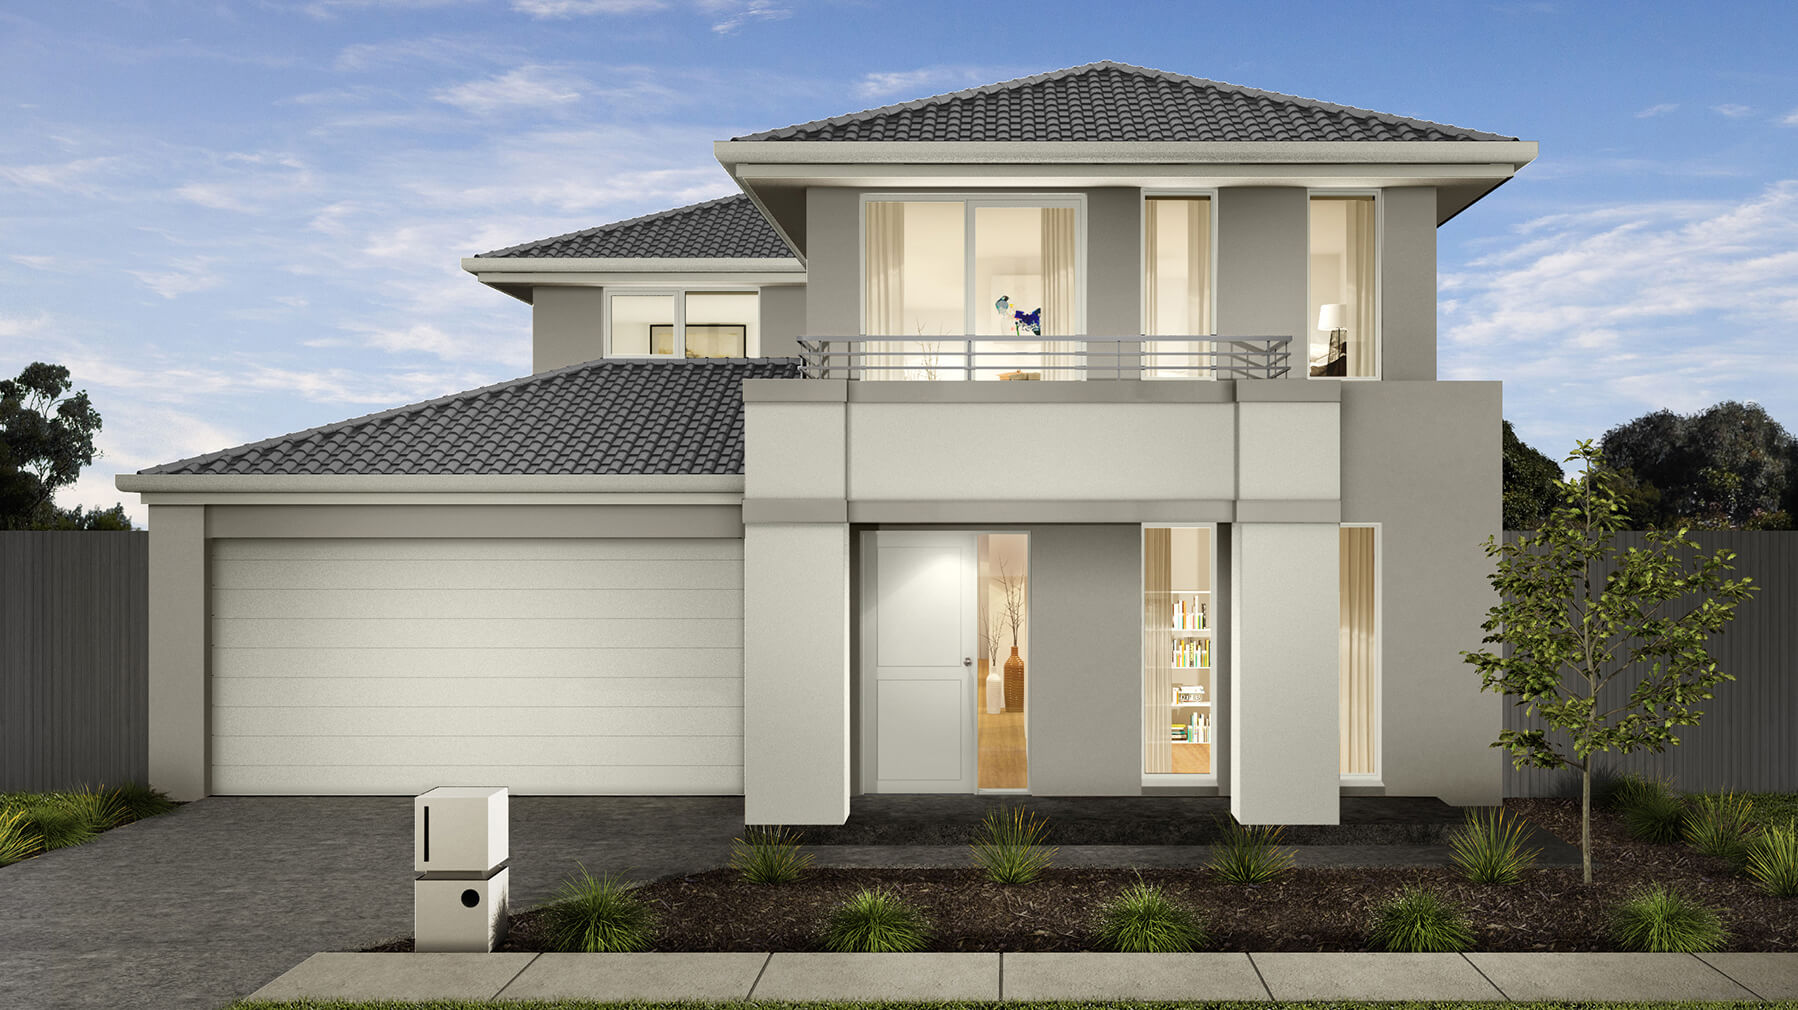 EASYLIVING SANDRIDGE 14 (HEBEL) Exterior Image 1